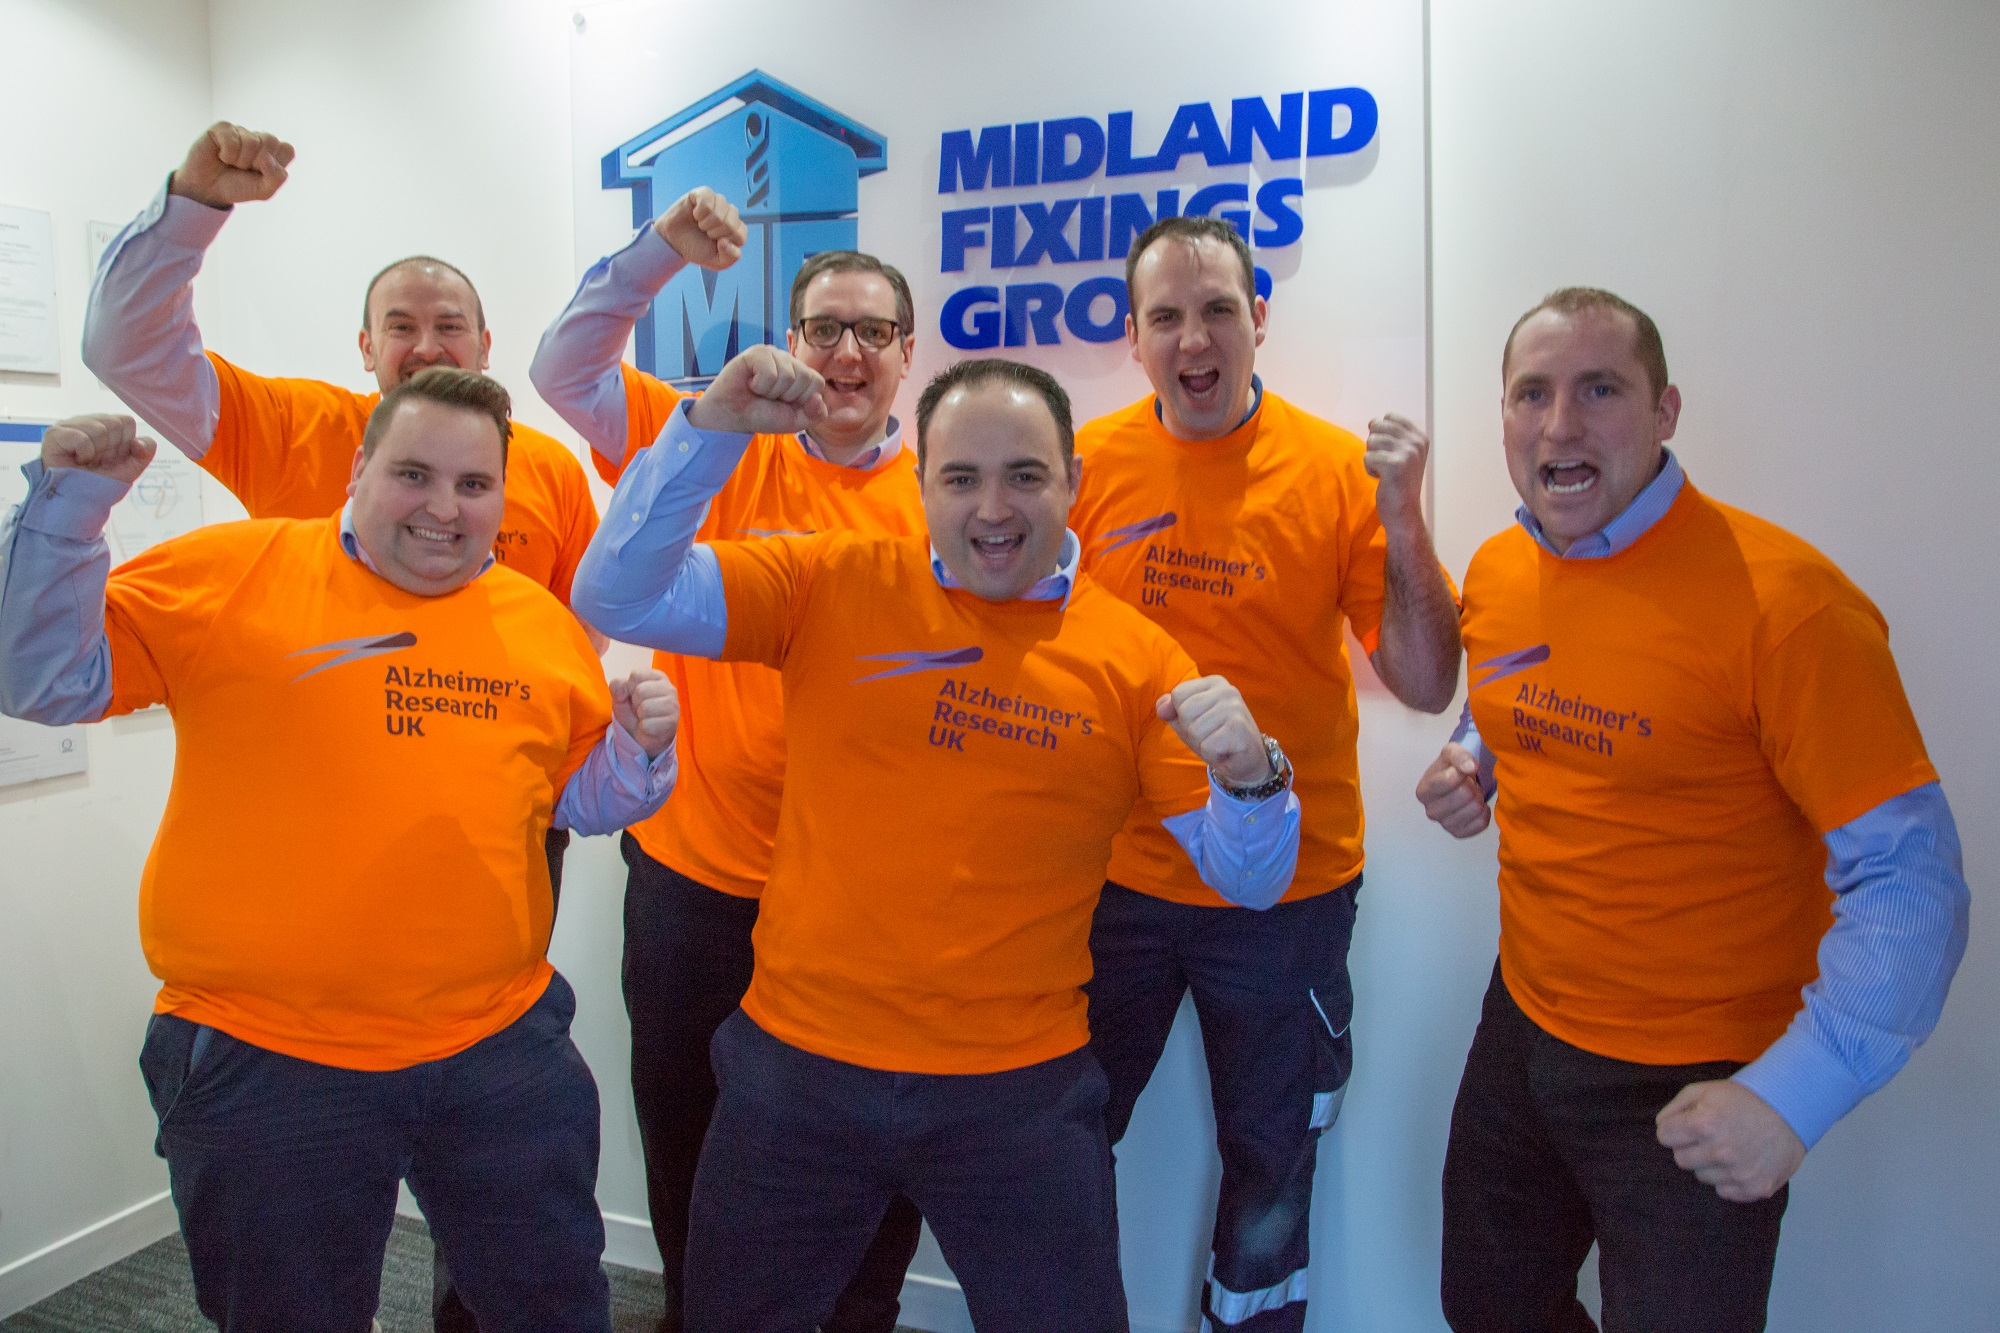 MIDLAND FIXINGS LAUNCHES ITS 2018 FUNDRAISING PROGRAMME